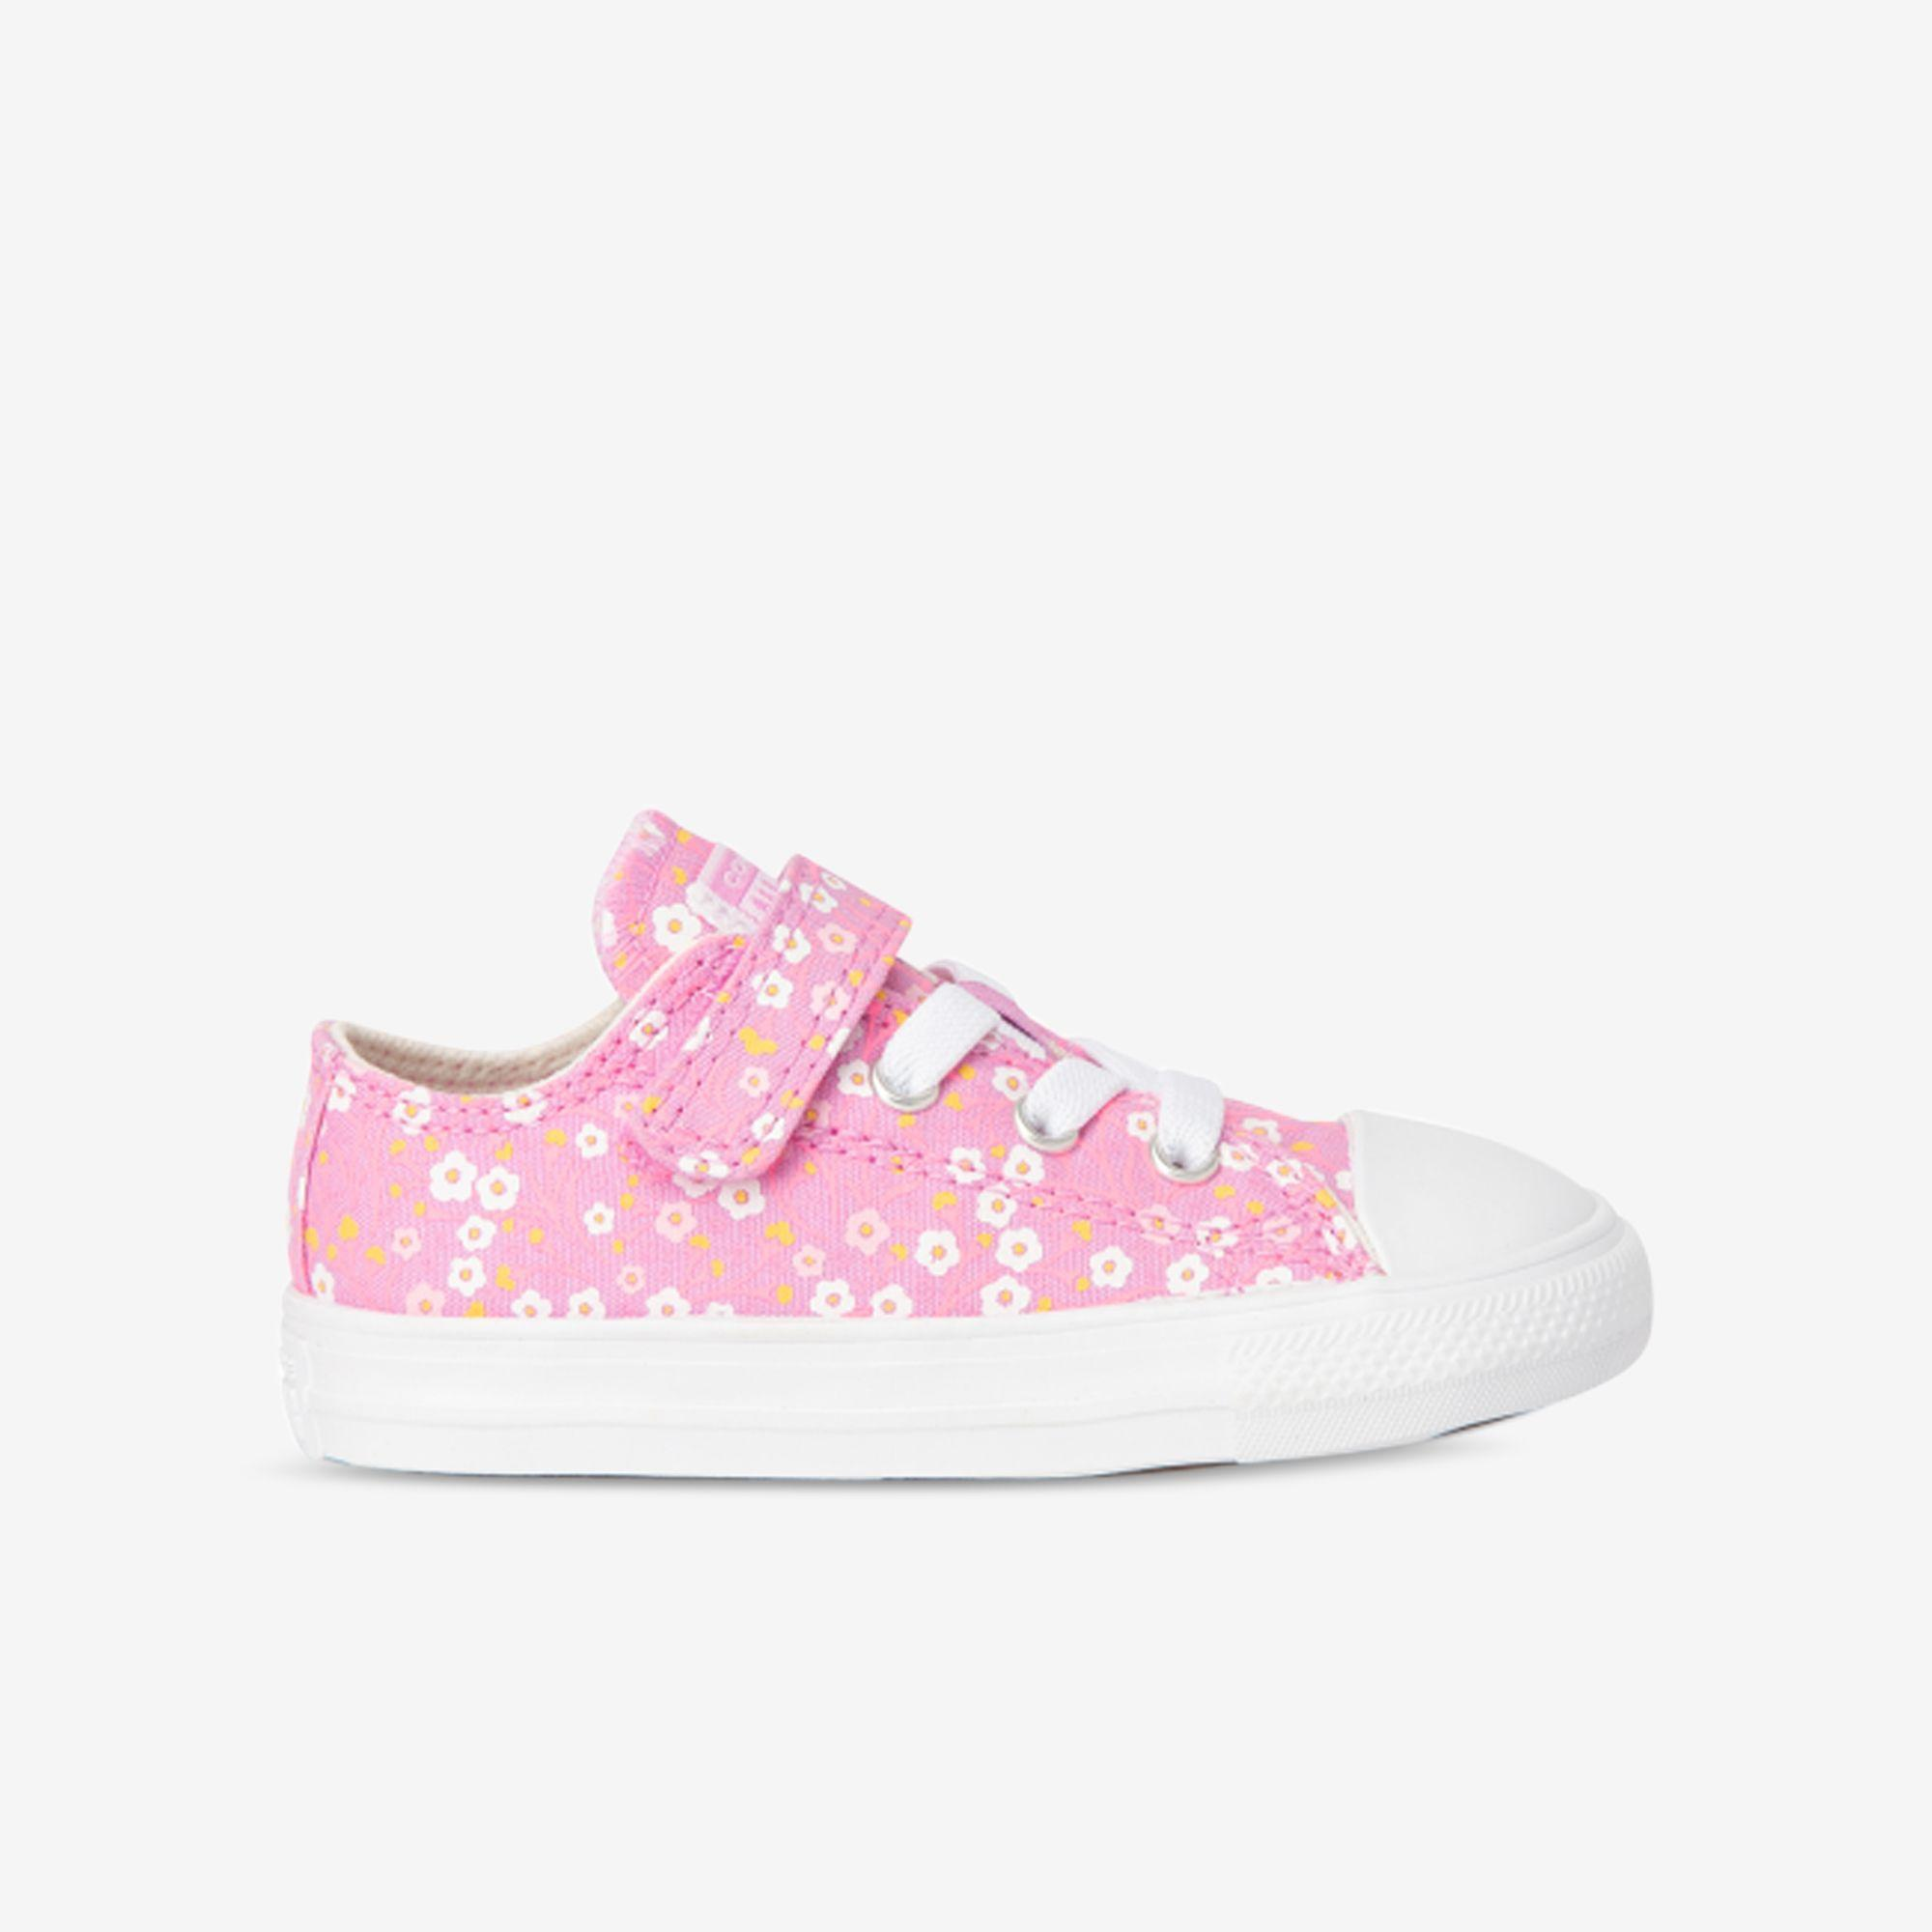 Shop Toddler Converse Pink Chuck Taylor All Star Ditsy